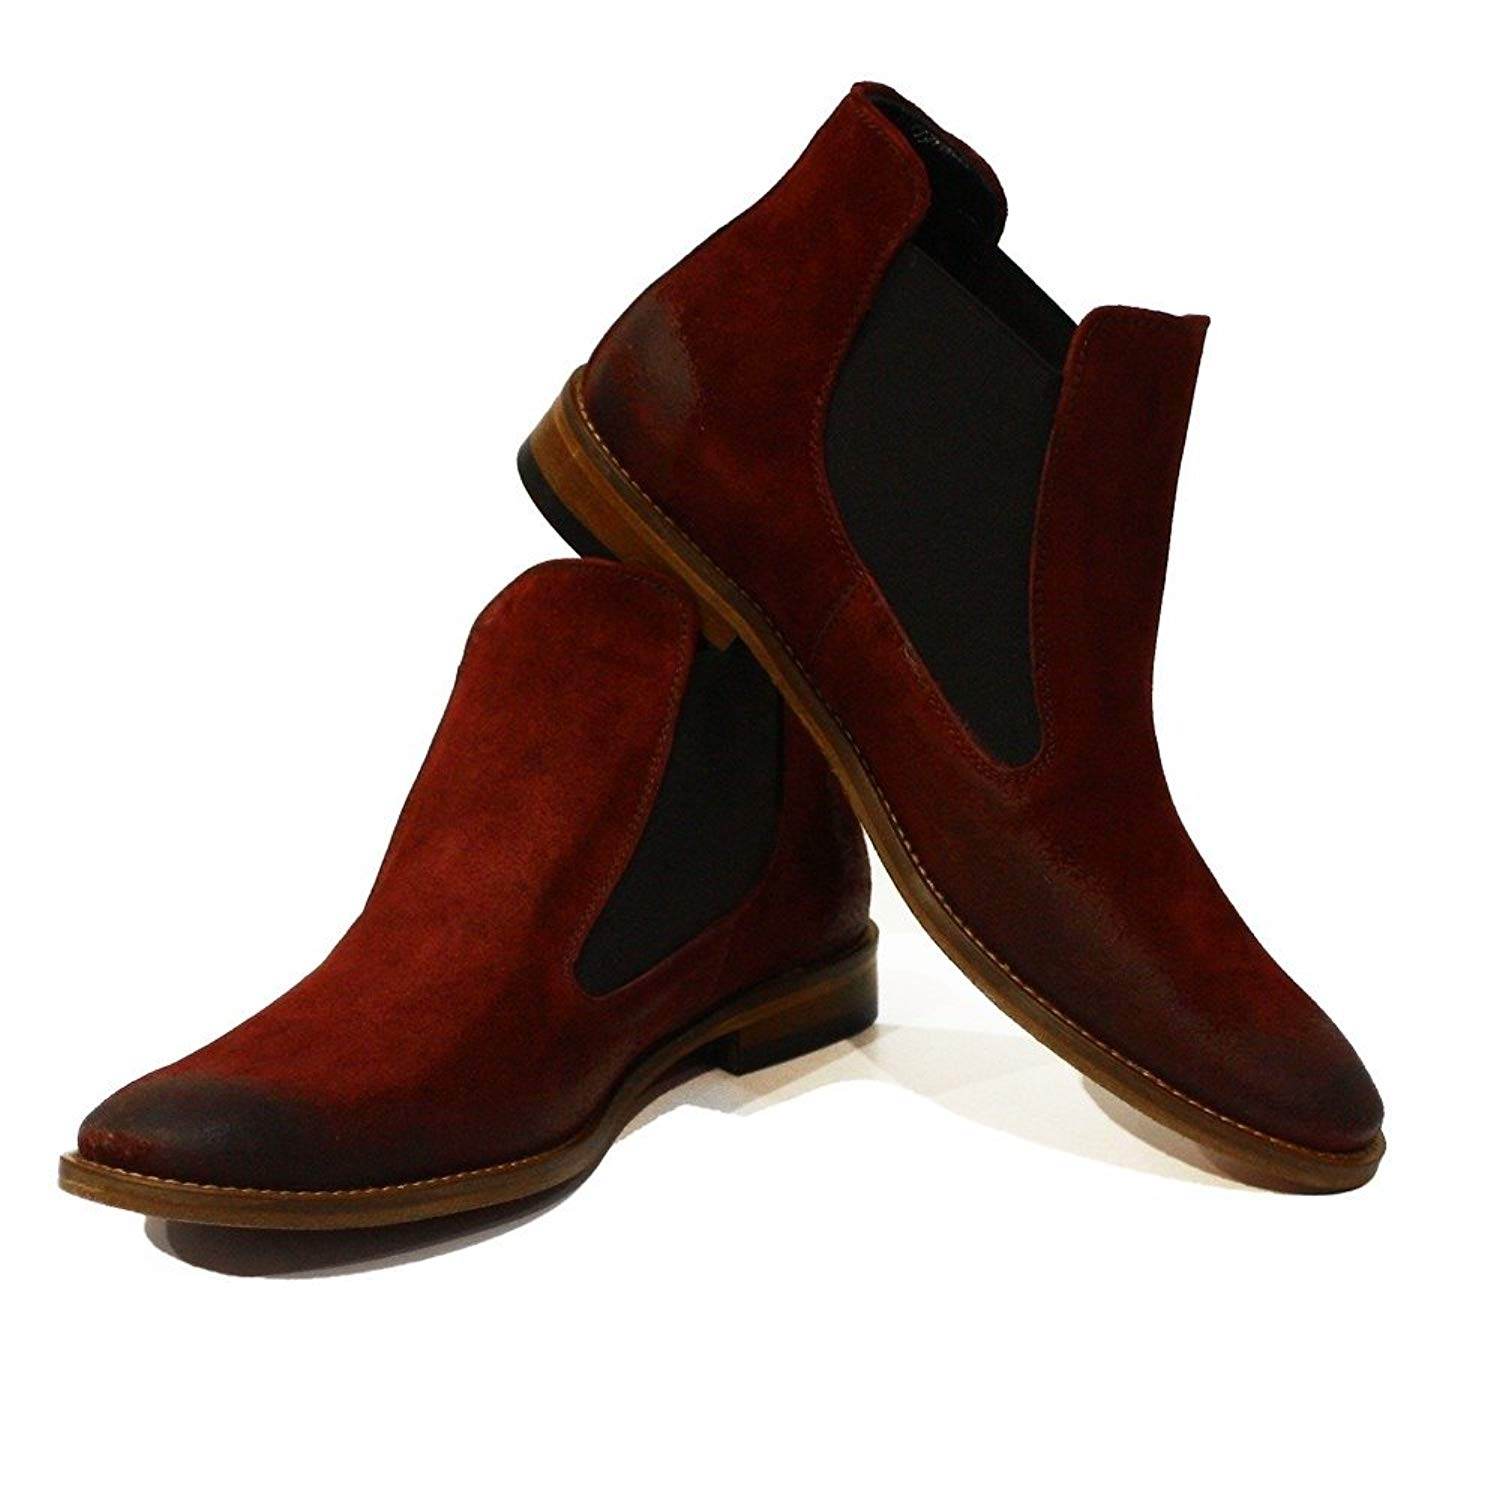 PeppeShoes Modello Costantino - Handmade Italian Mens Red Ankle Chelsea Boots - Cowhide Suede - Slip-On